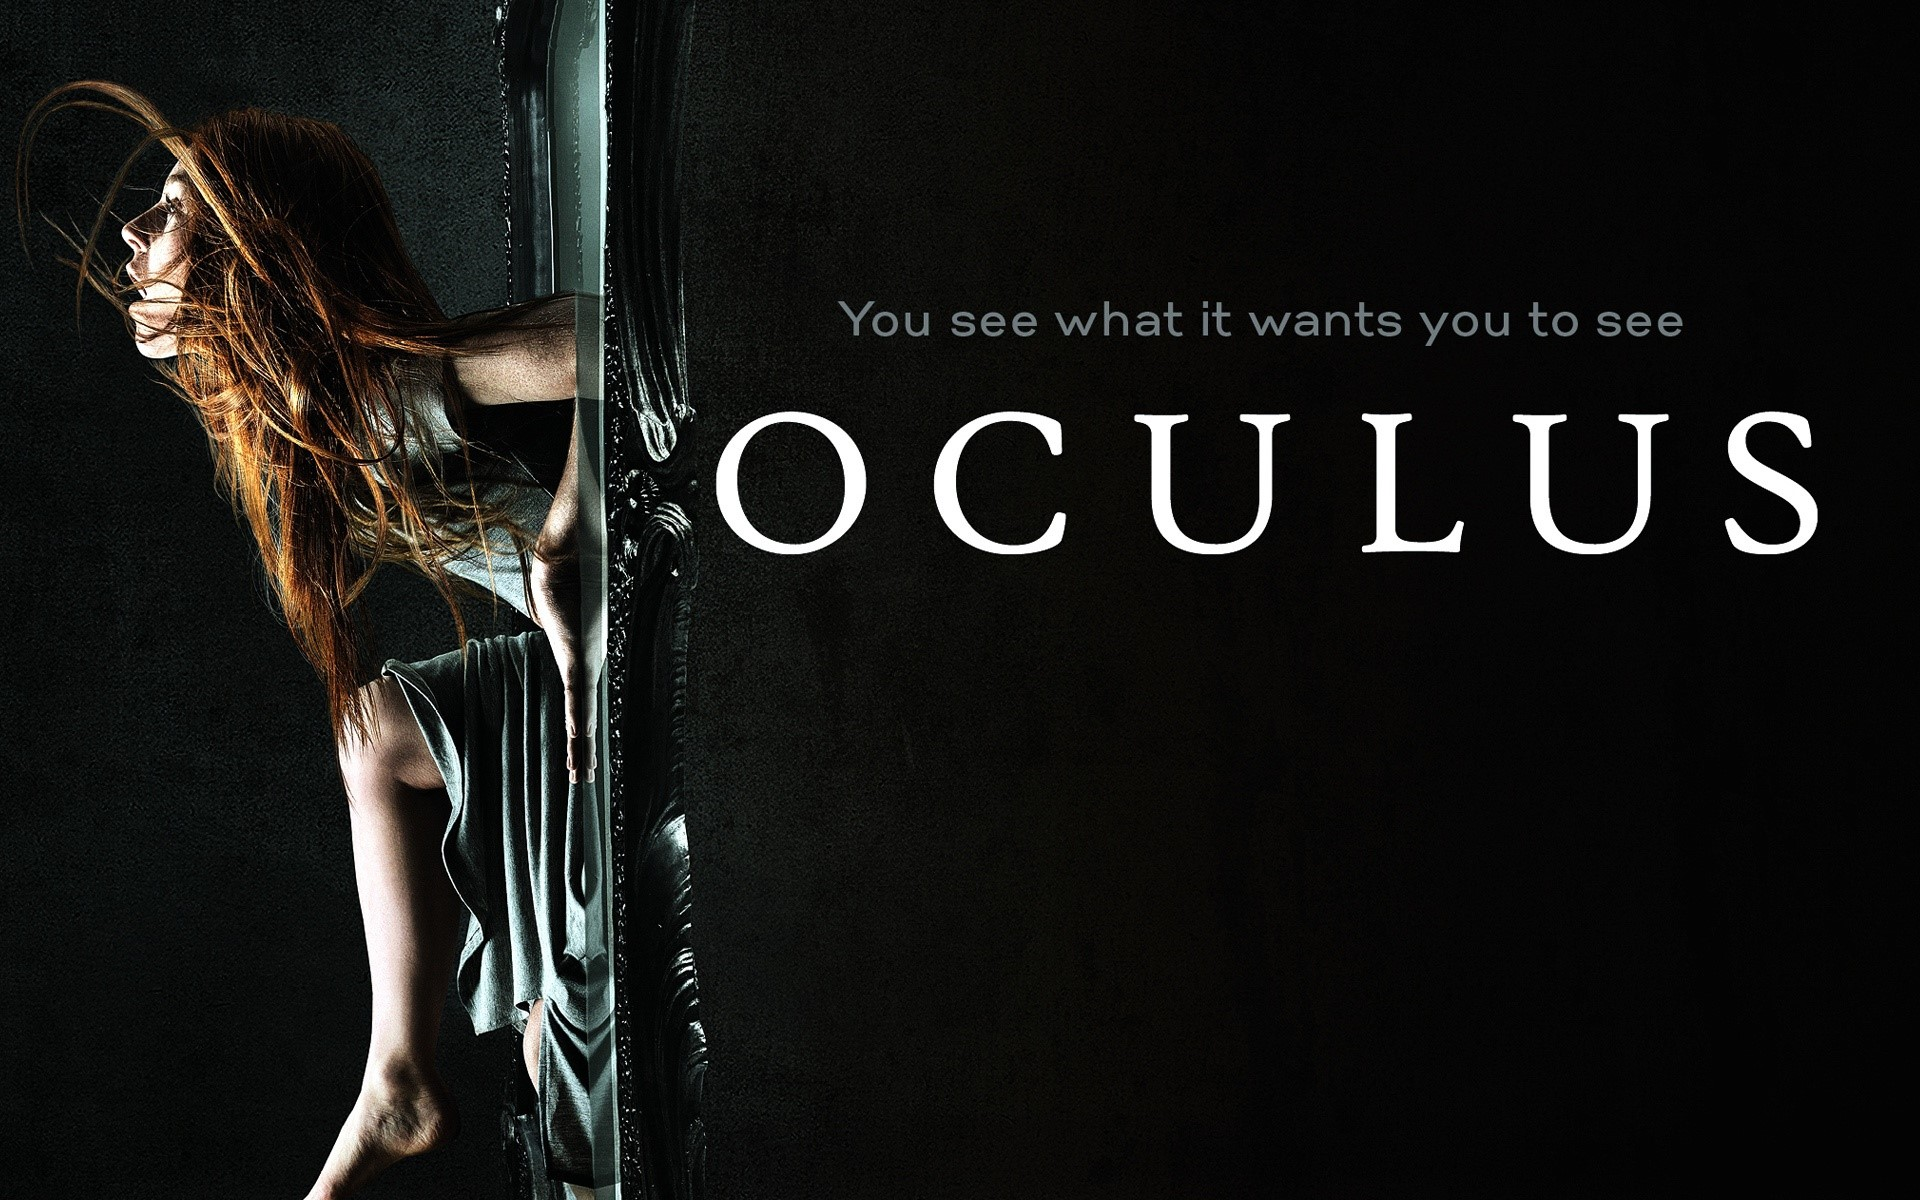 Wallpaper Oculus The reflection of evil